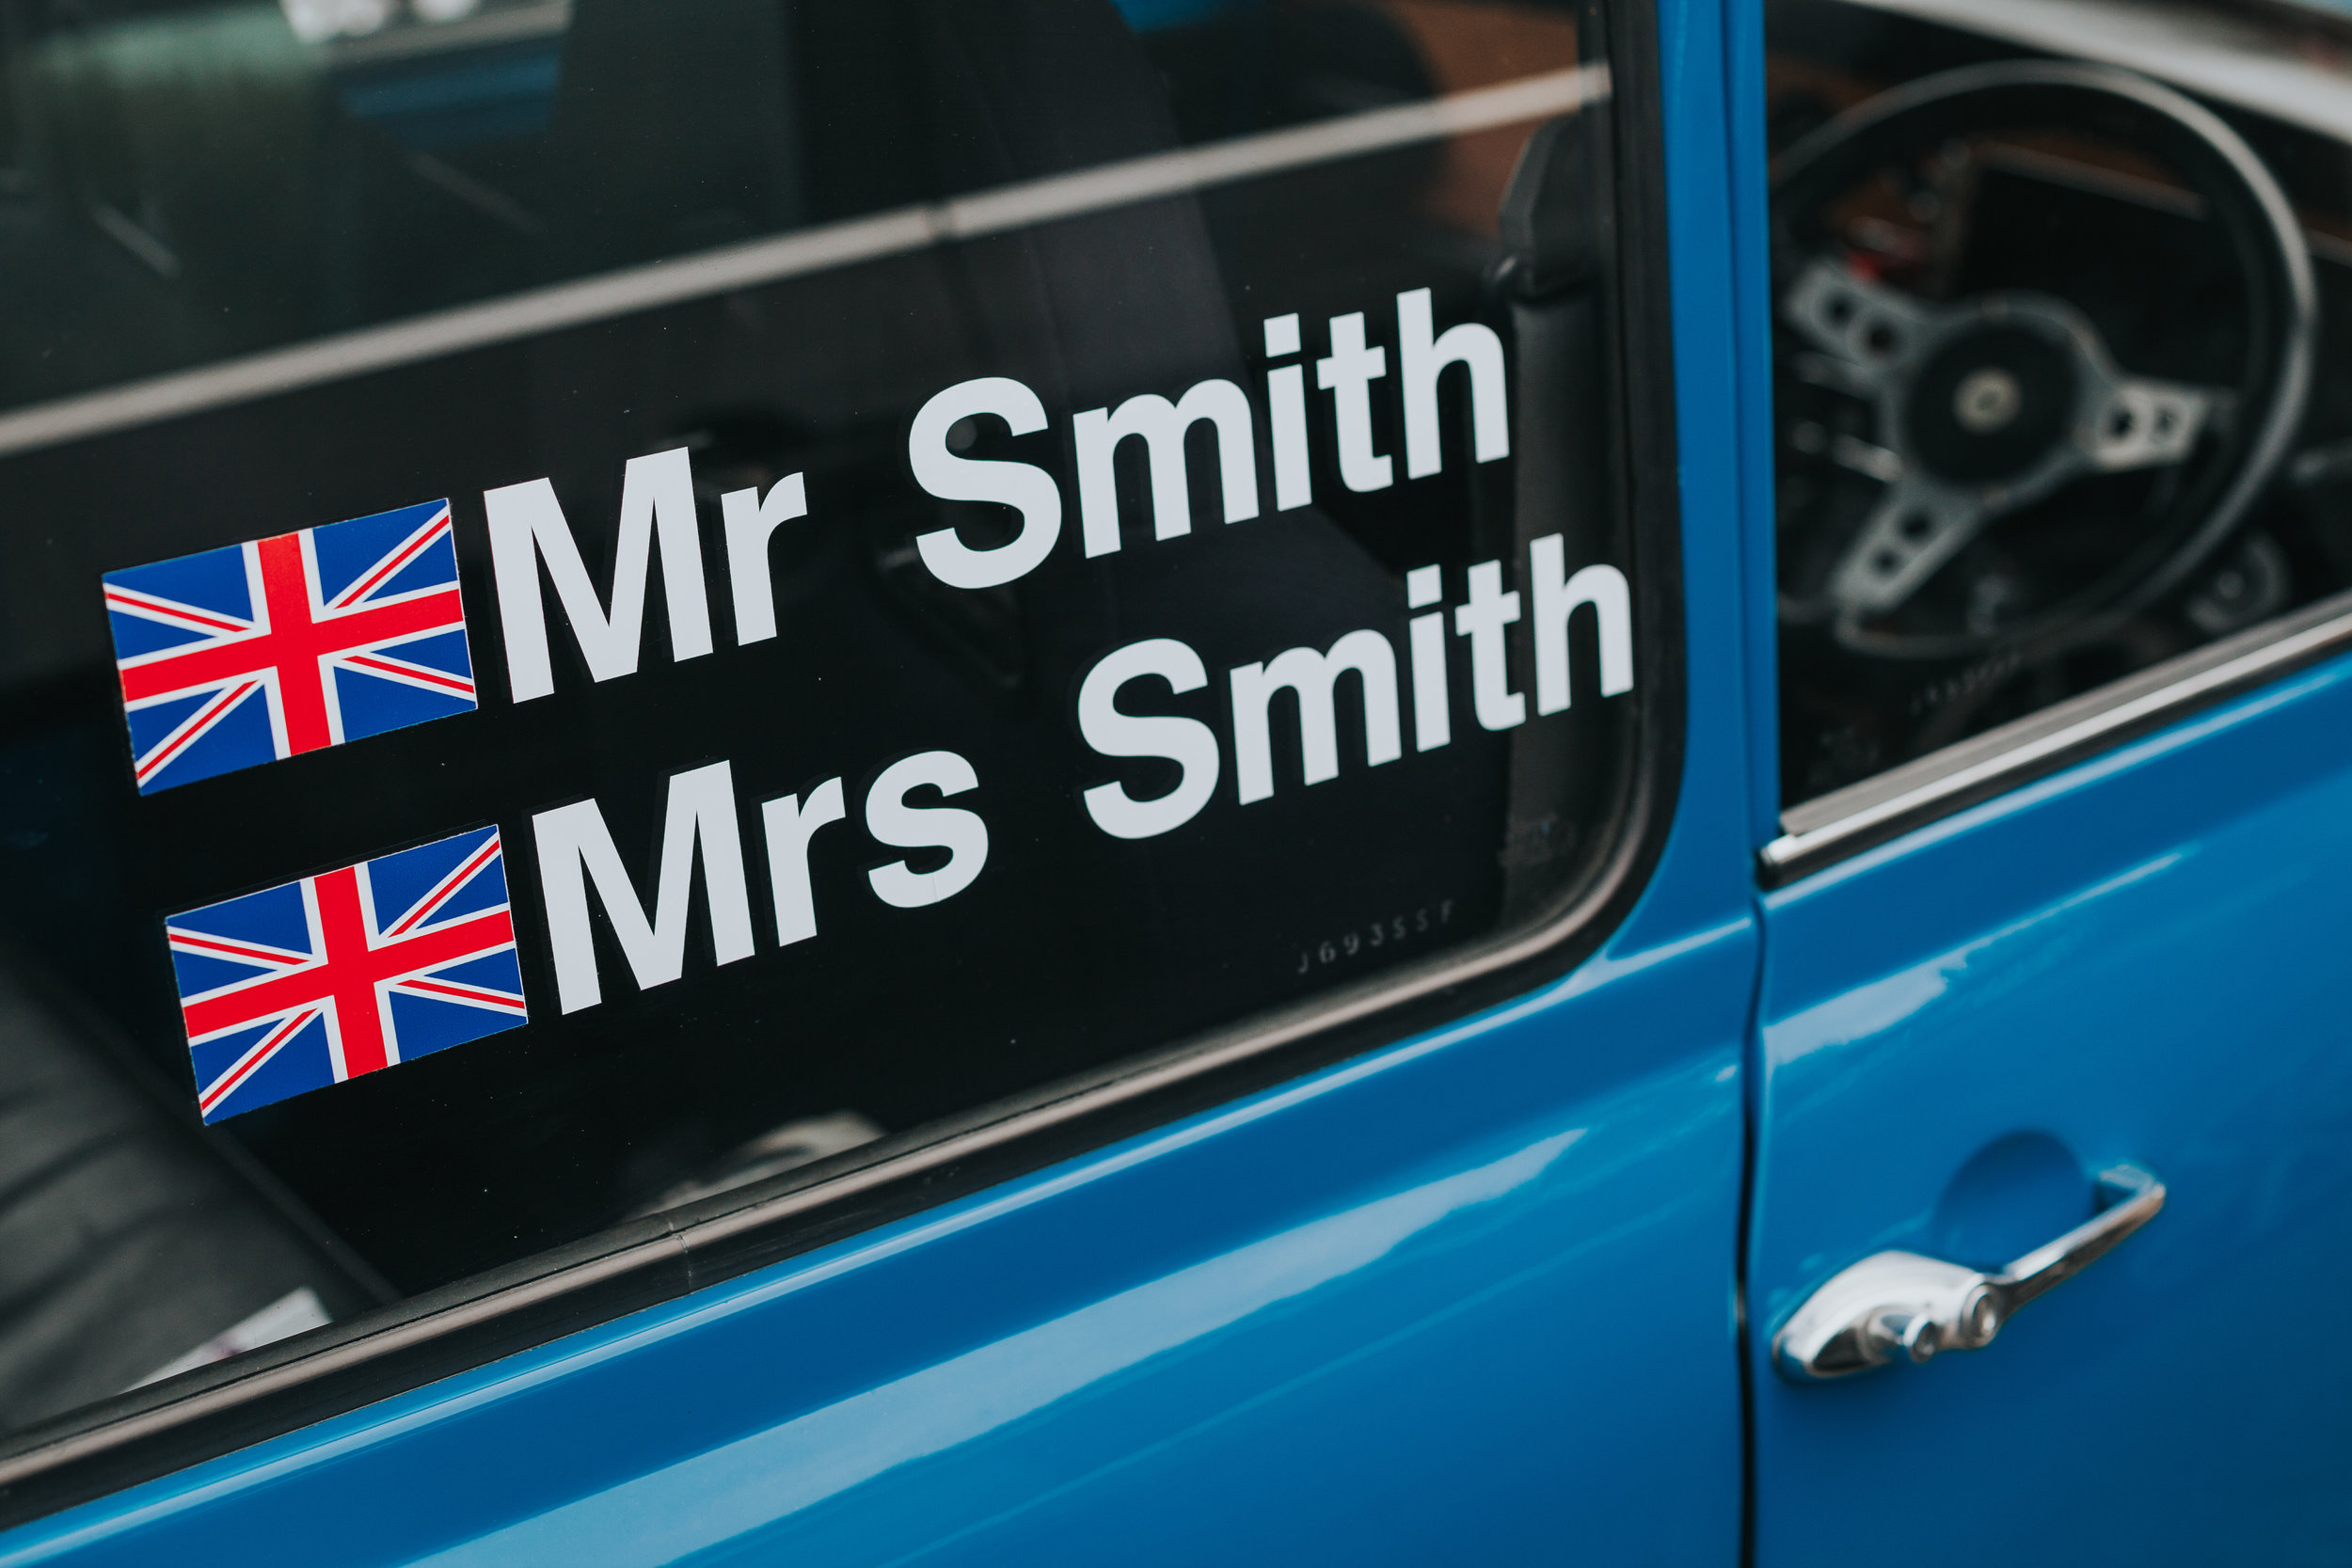 Window of a blue mini, with Mr and Mrs Smith written on it.